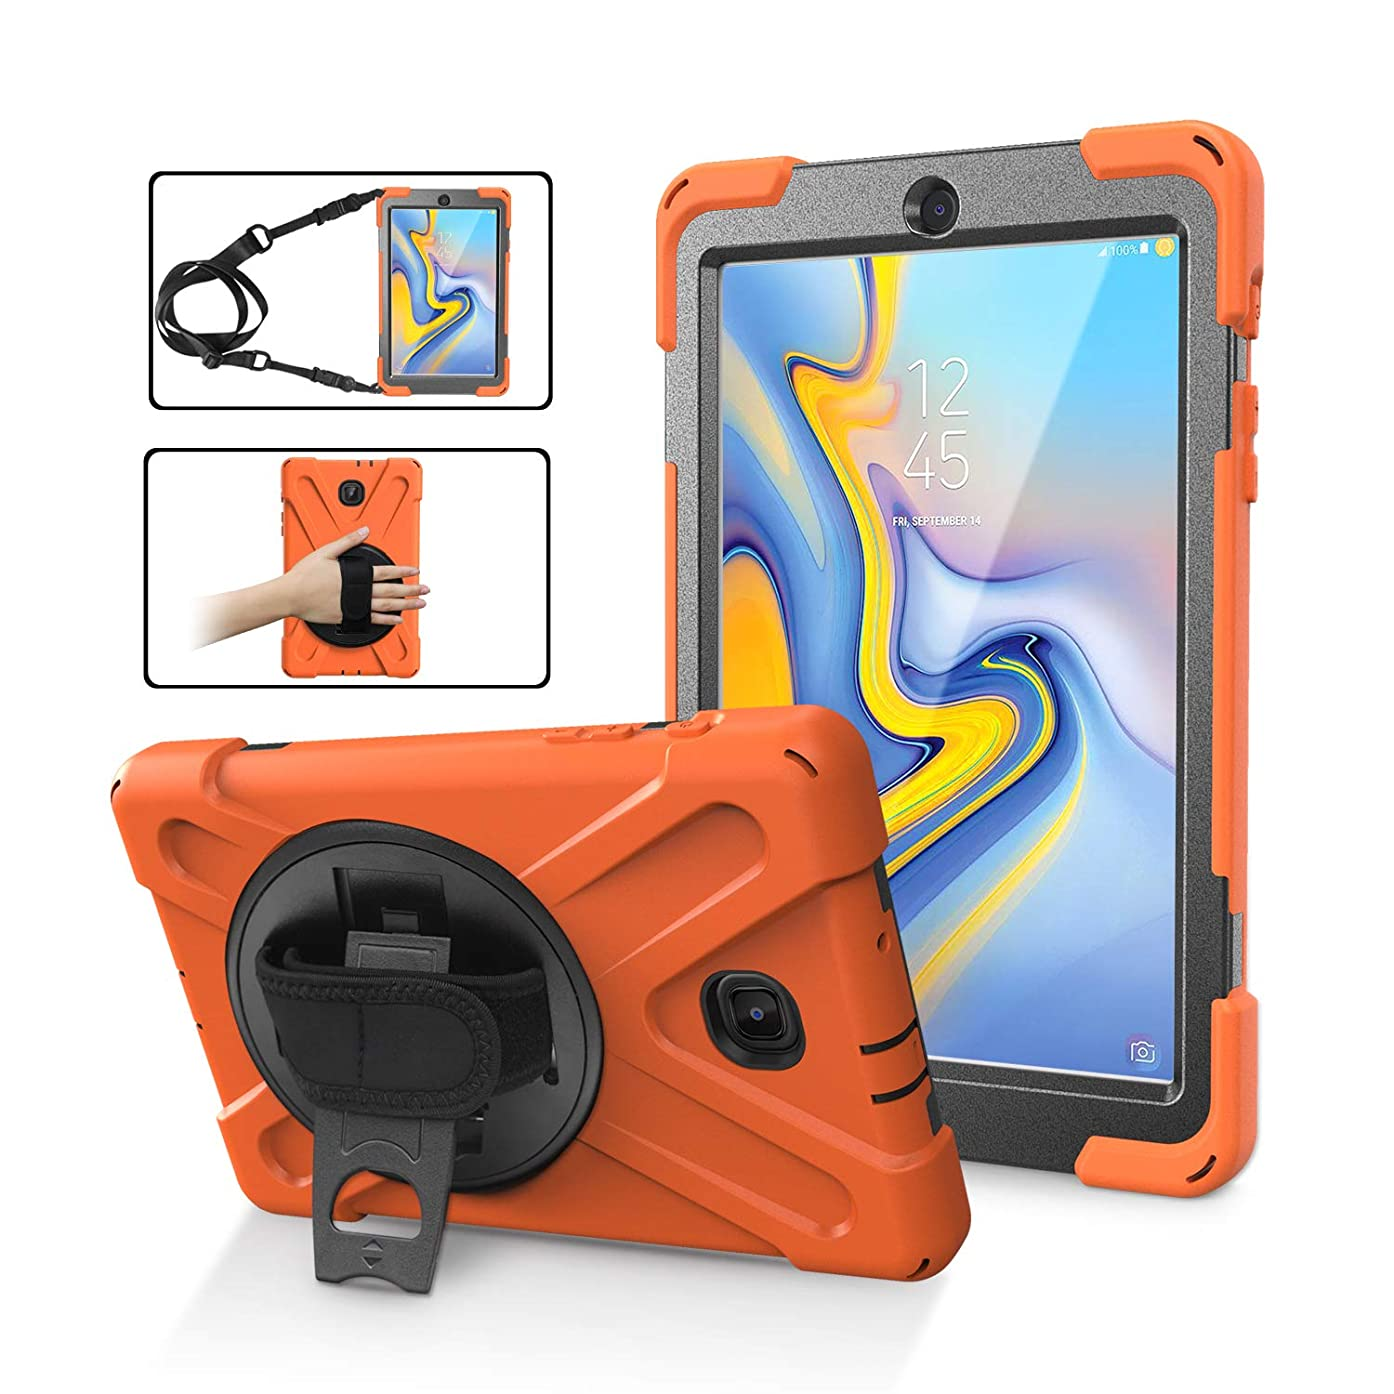 Samsung Galaxy Tab A 8.0 2018 Case,ZERMU Heavy Duty Three Layer Shockproof Rugged Hard PC+Silicone Armor Case with Built-in Stand+Hand Strap+Shoulder Strap for Samsung Galaxy Tab A 8.0 (2018) SM-T387